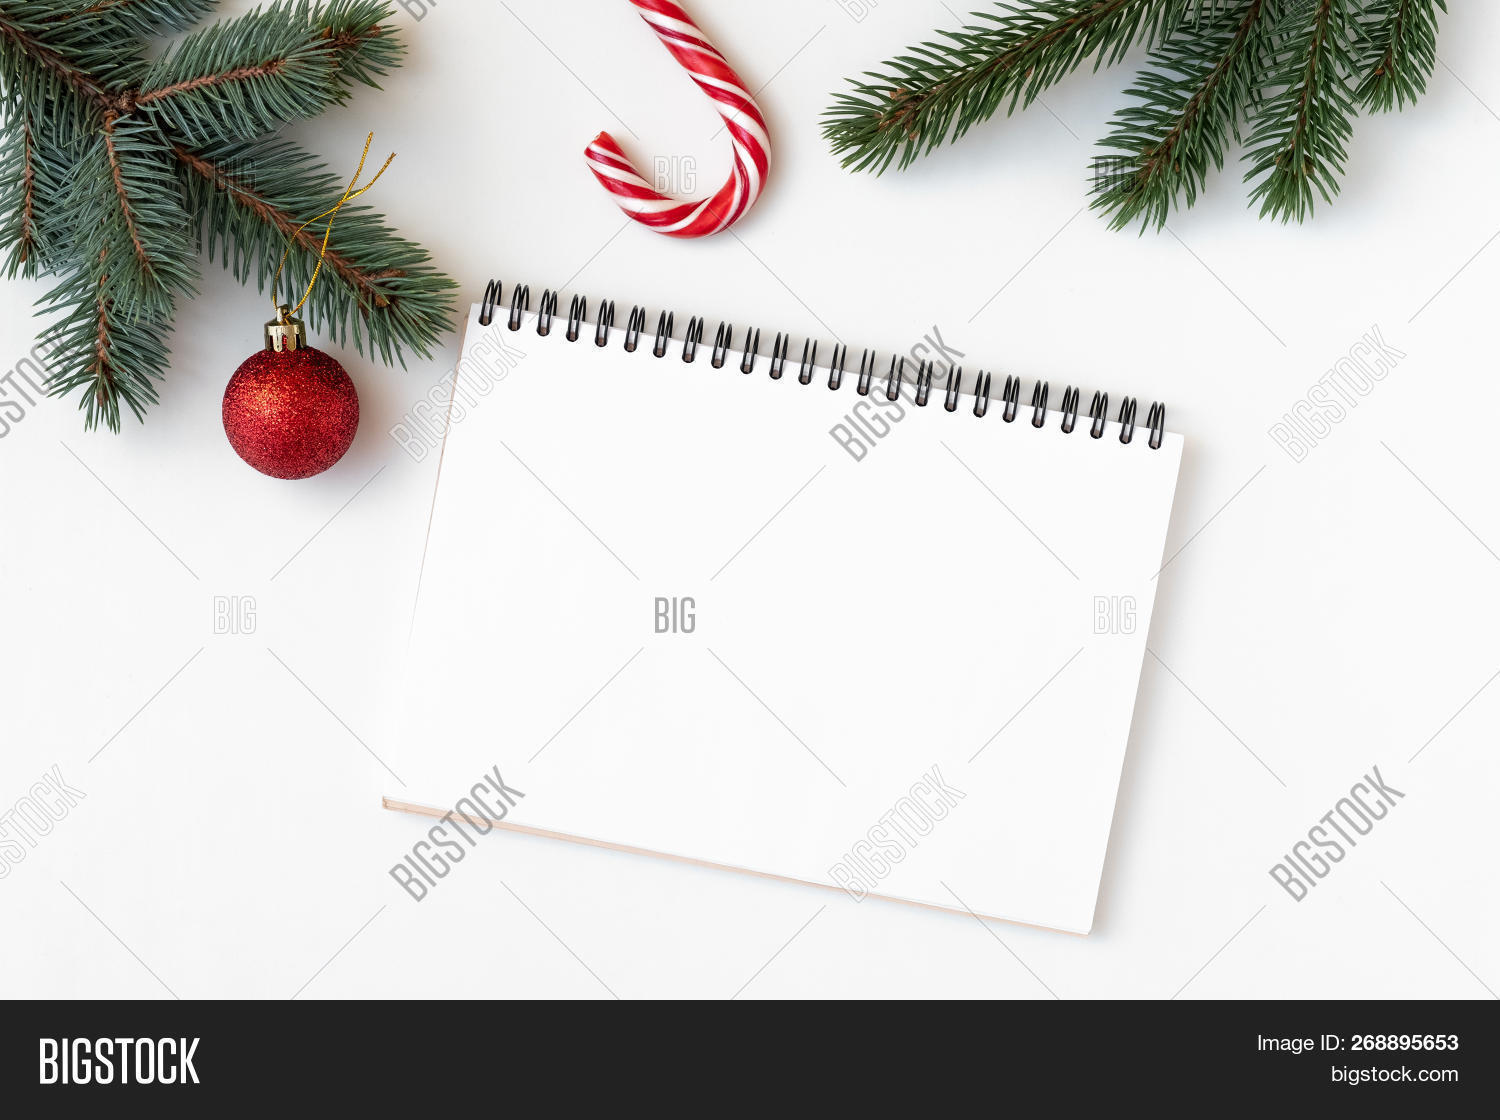 Christmas Decorations, Branch Of Fir, Candy Cane, Notebook With To Do List,